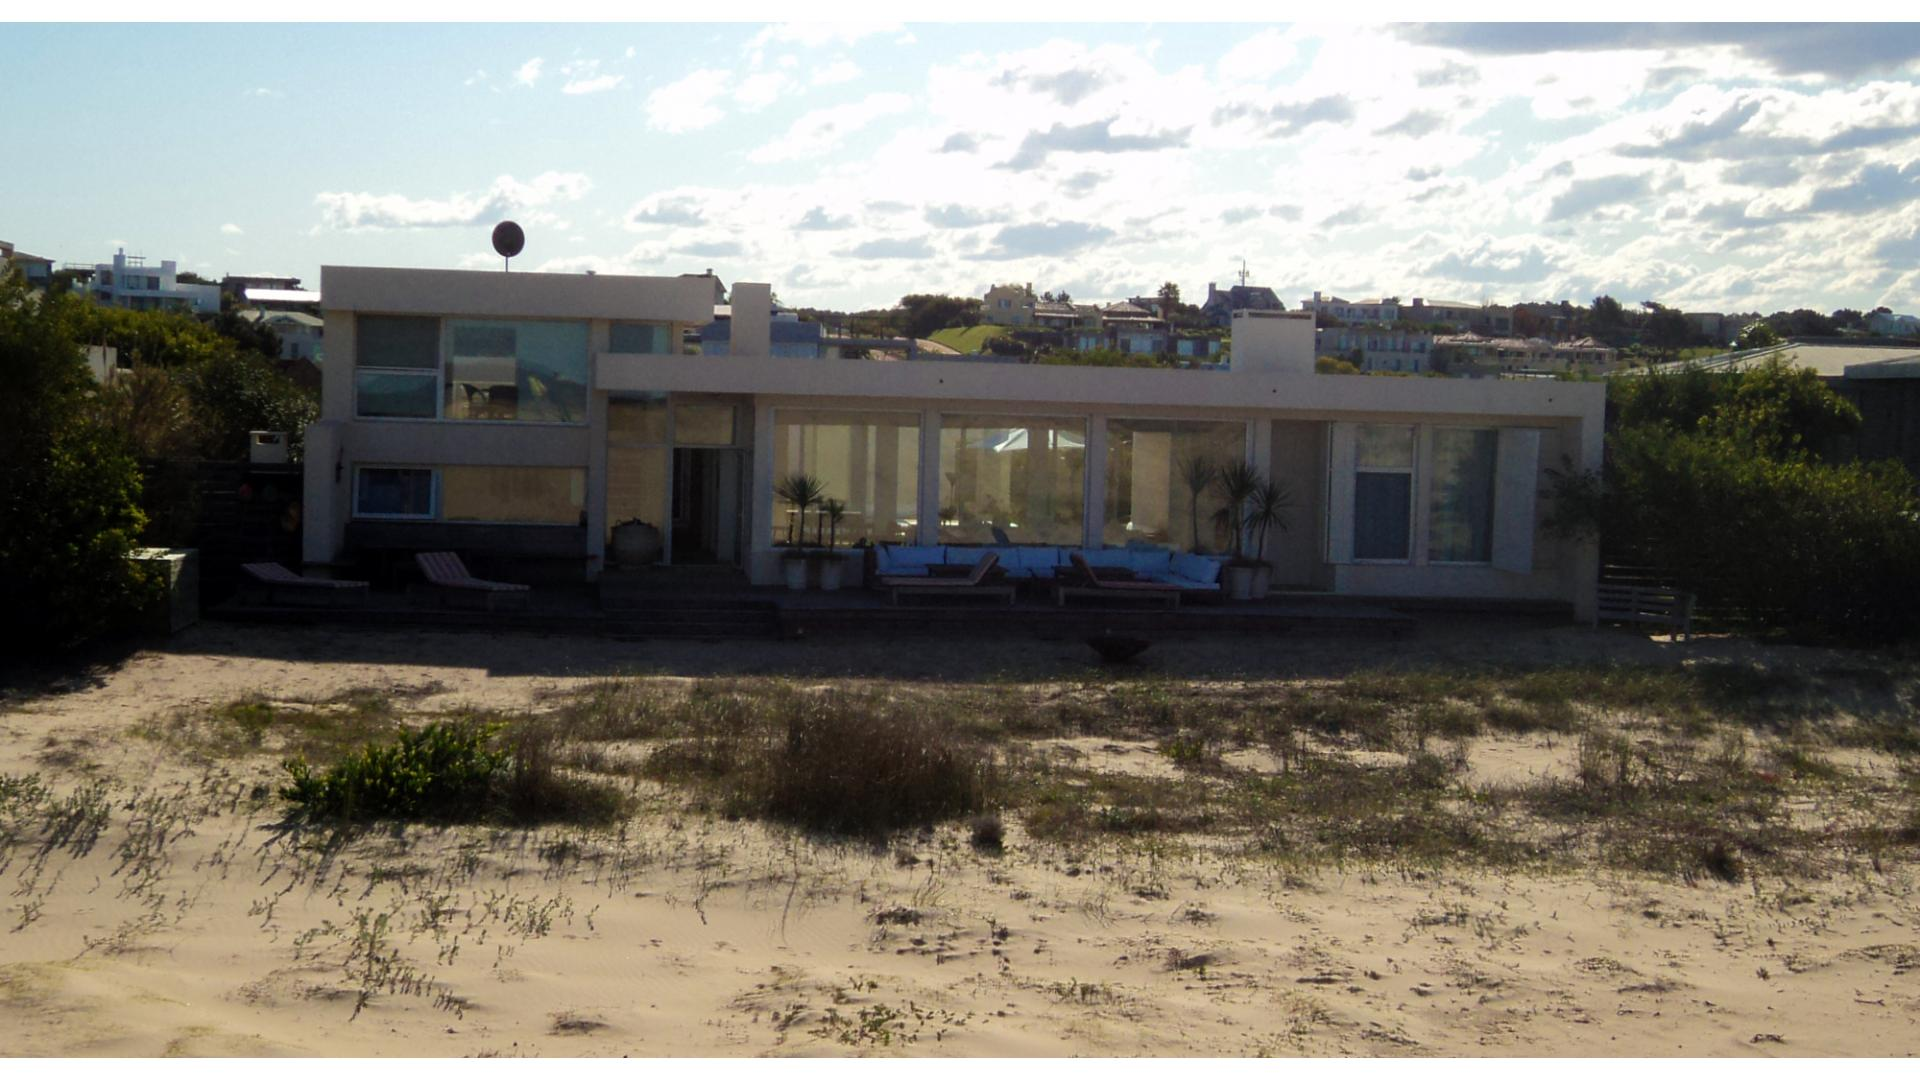 Beachfront Villa in Private Neighborhood located in Jose Ignacio, Punta del Este, Uruguay, listed by Curiocity Villas.